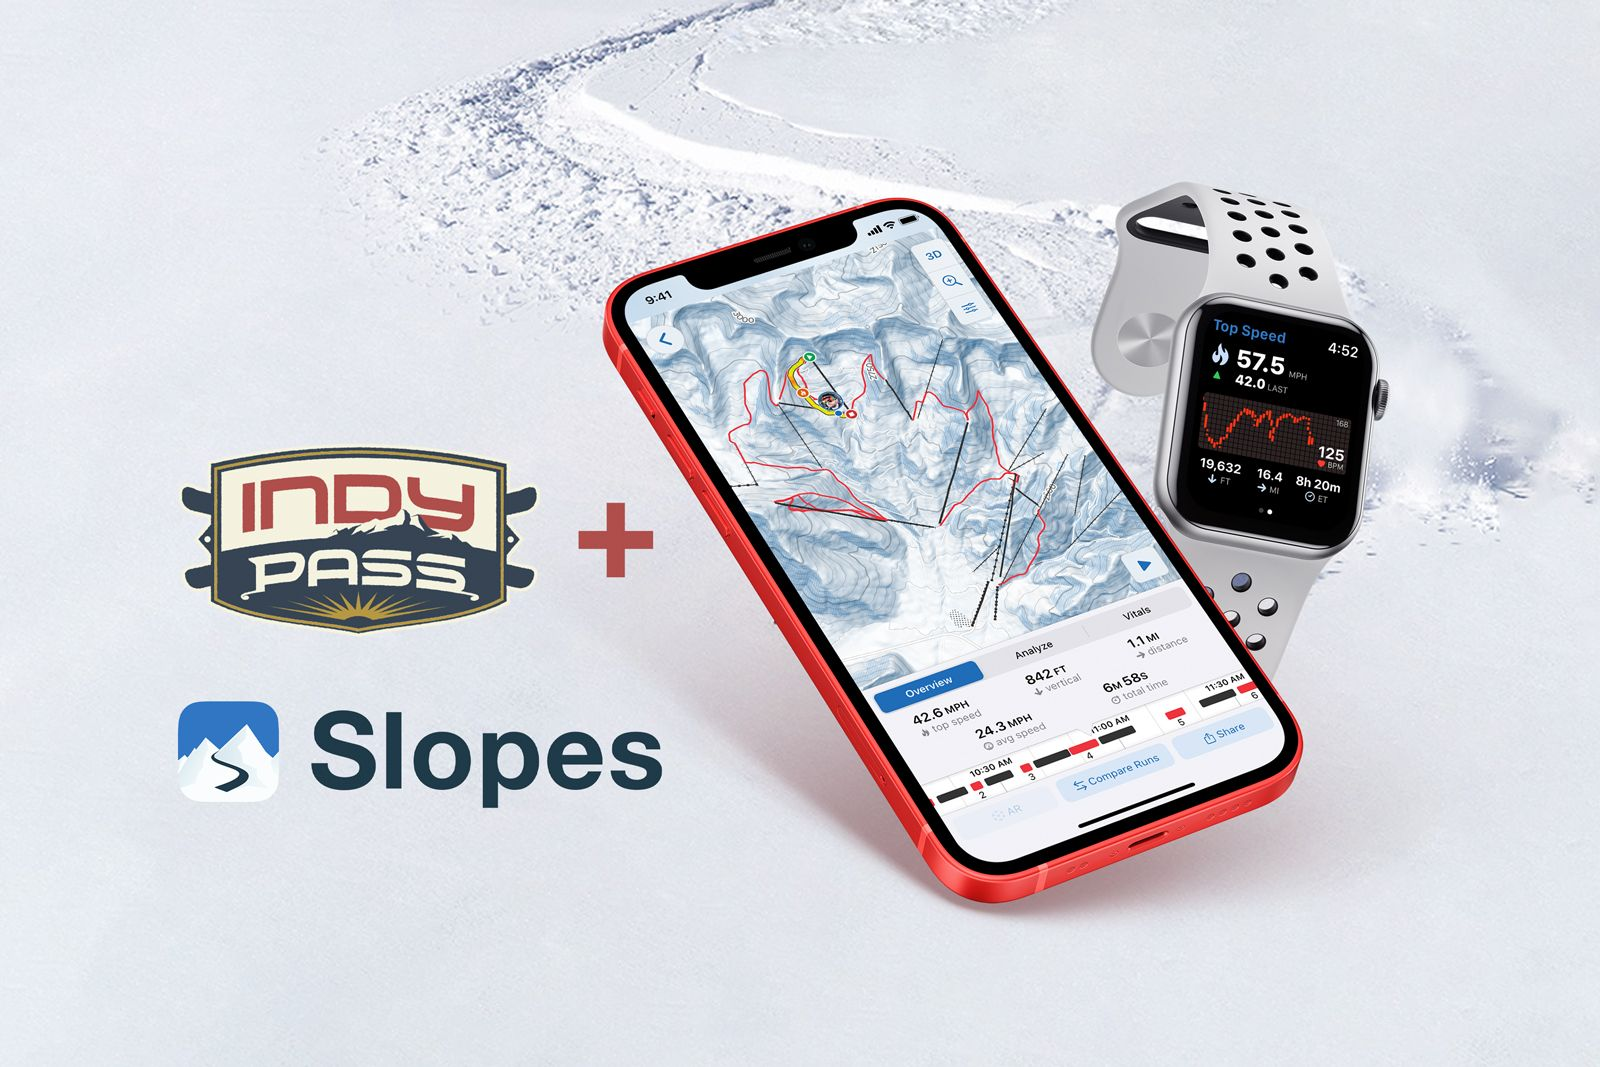 Slopes x Indy Pass - Join the Indy Revolution